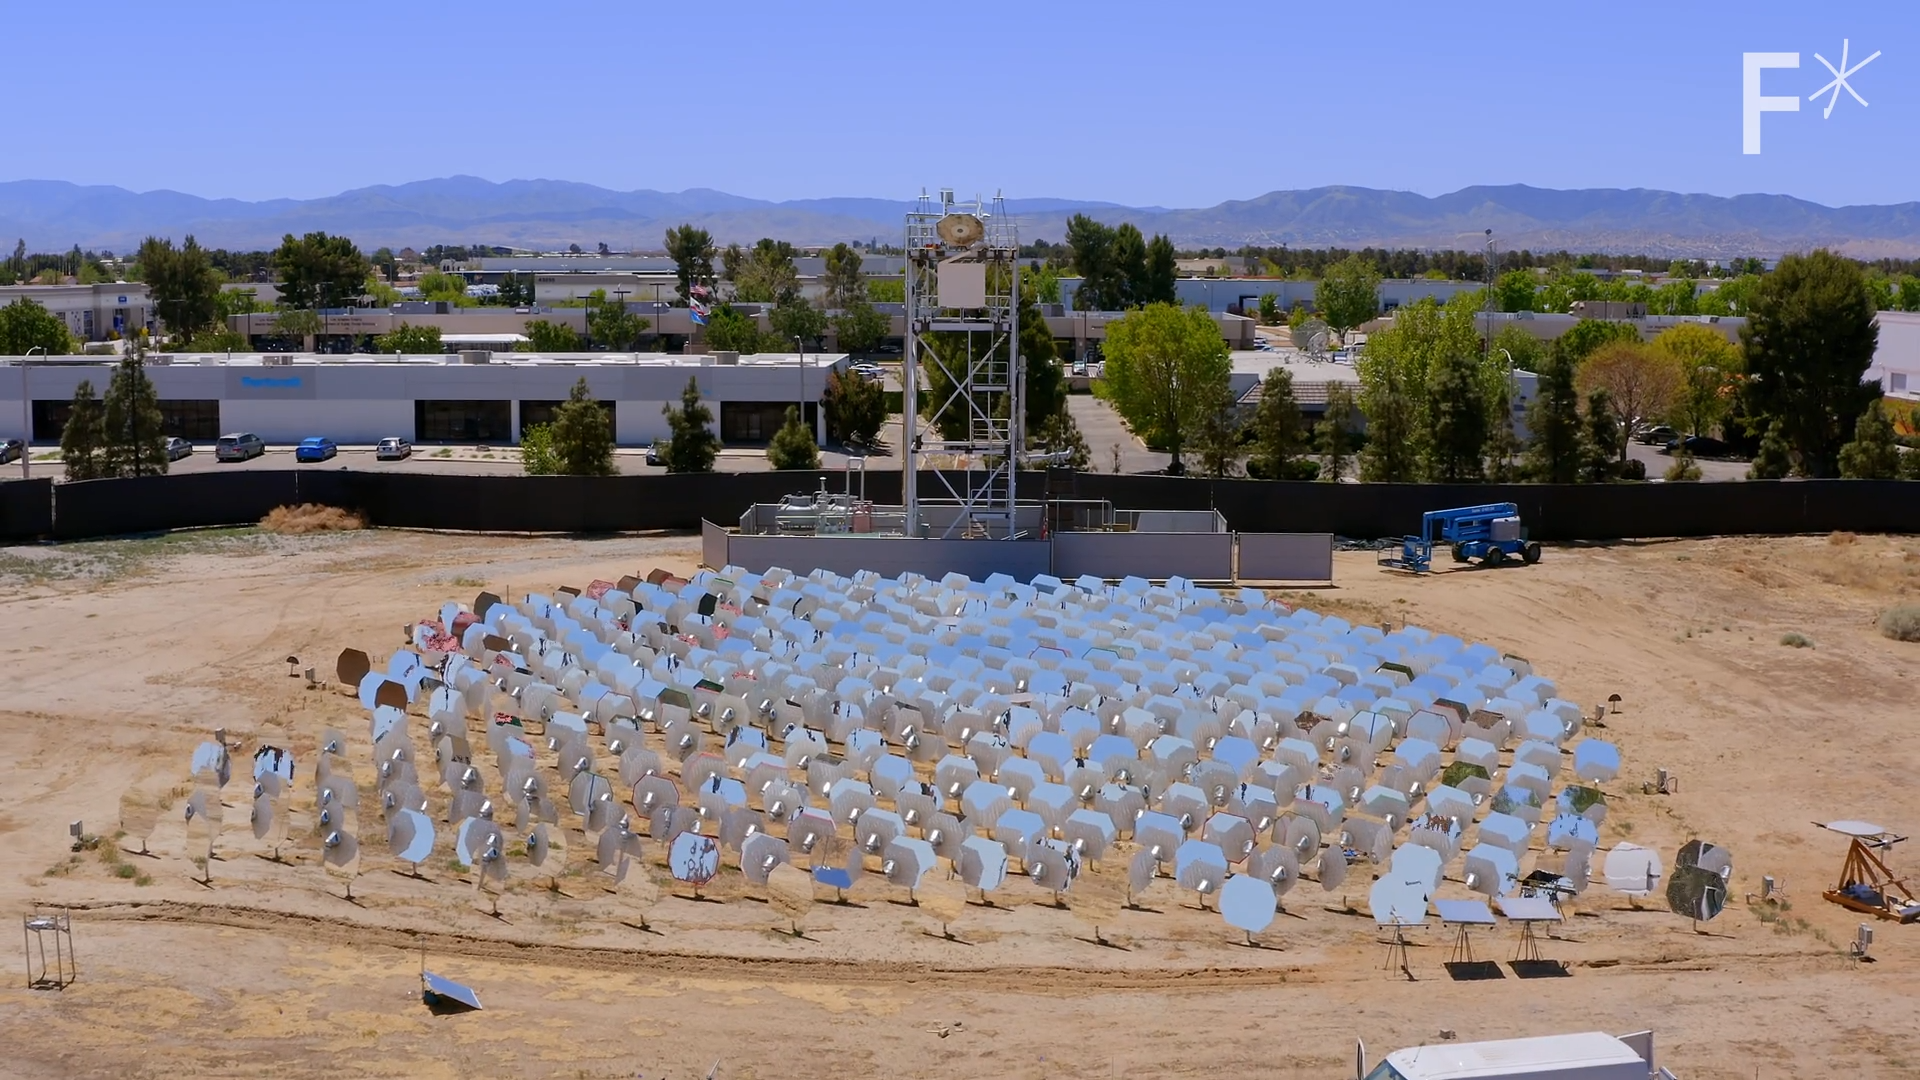 Heliogen: concentrated solar power plant produces temperatures of 2700° F